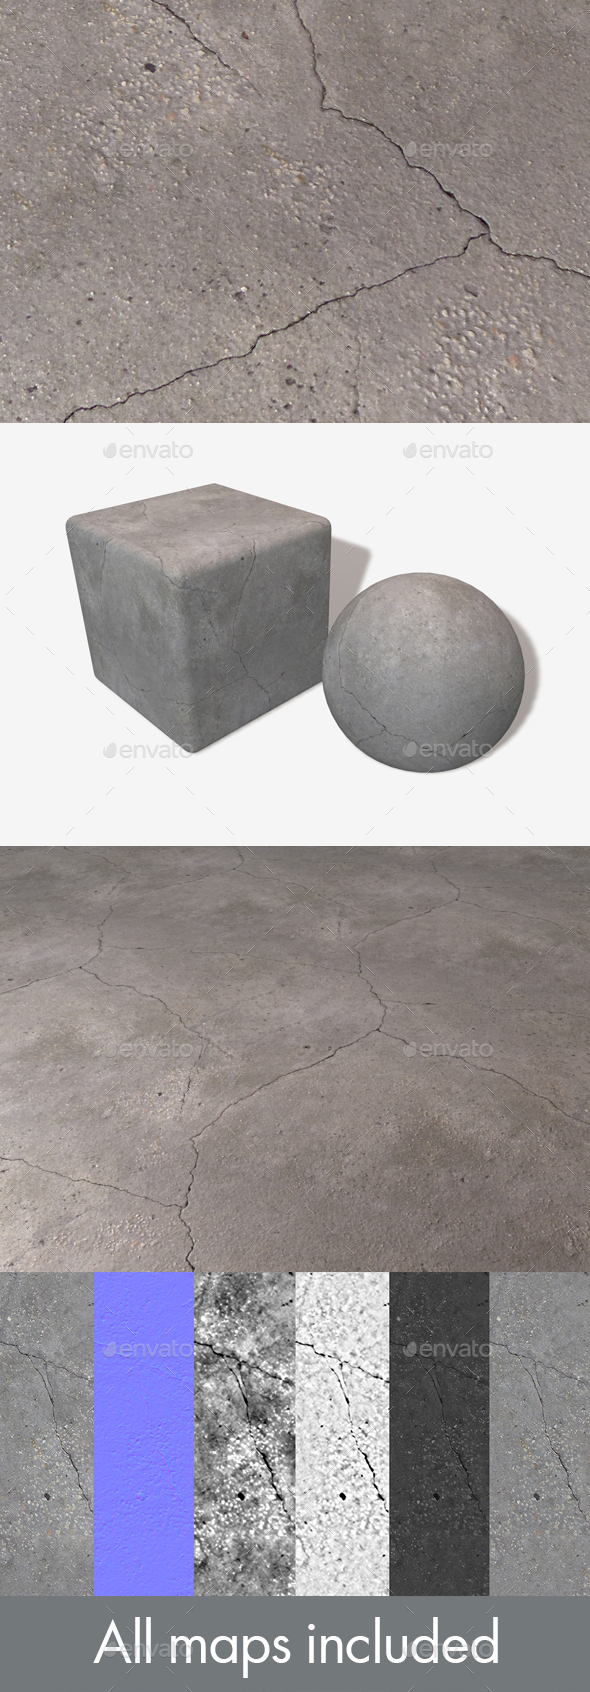 Concrete Cracks Seamless Texture - 3DOcean Item for Sale